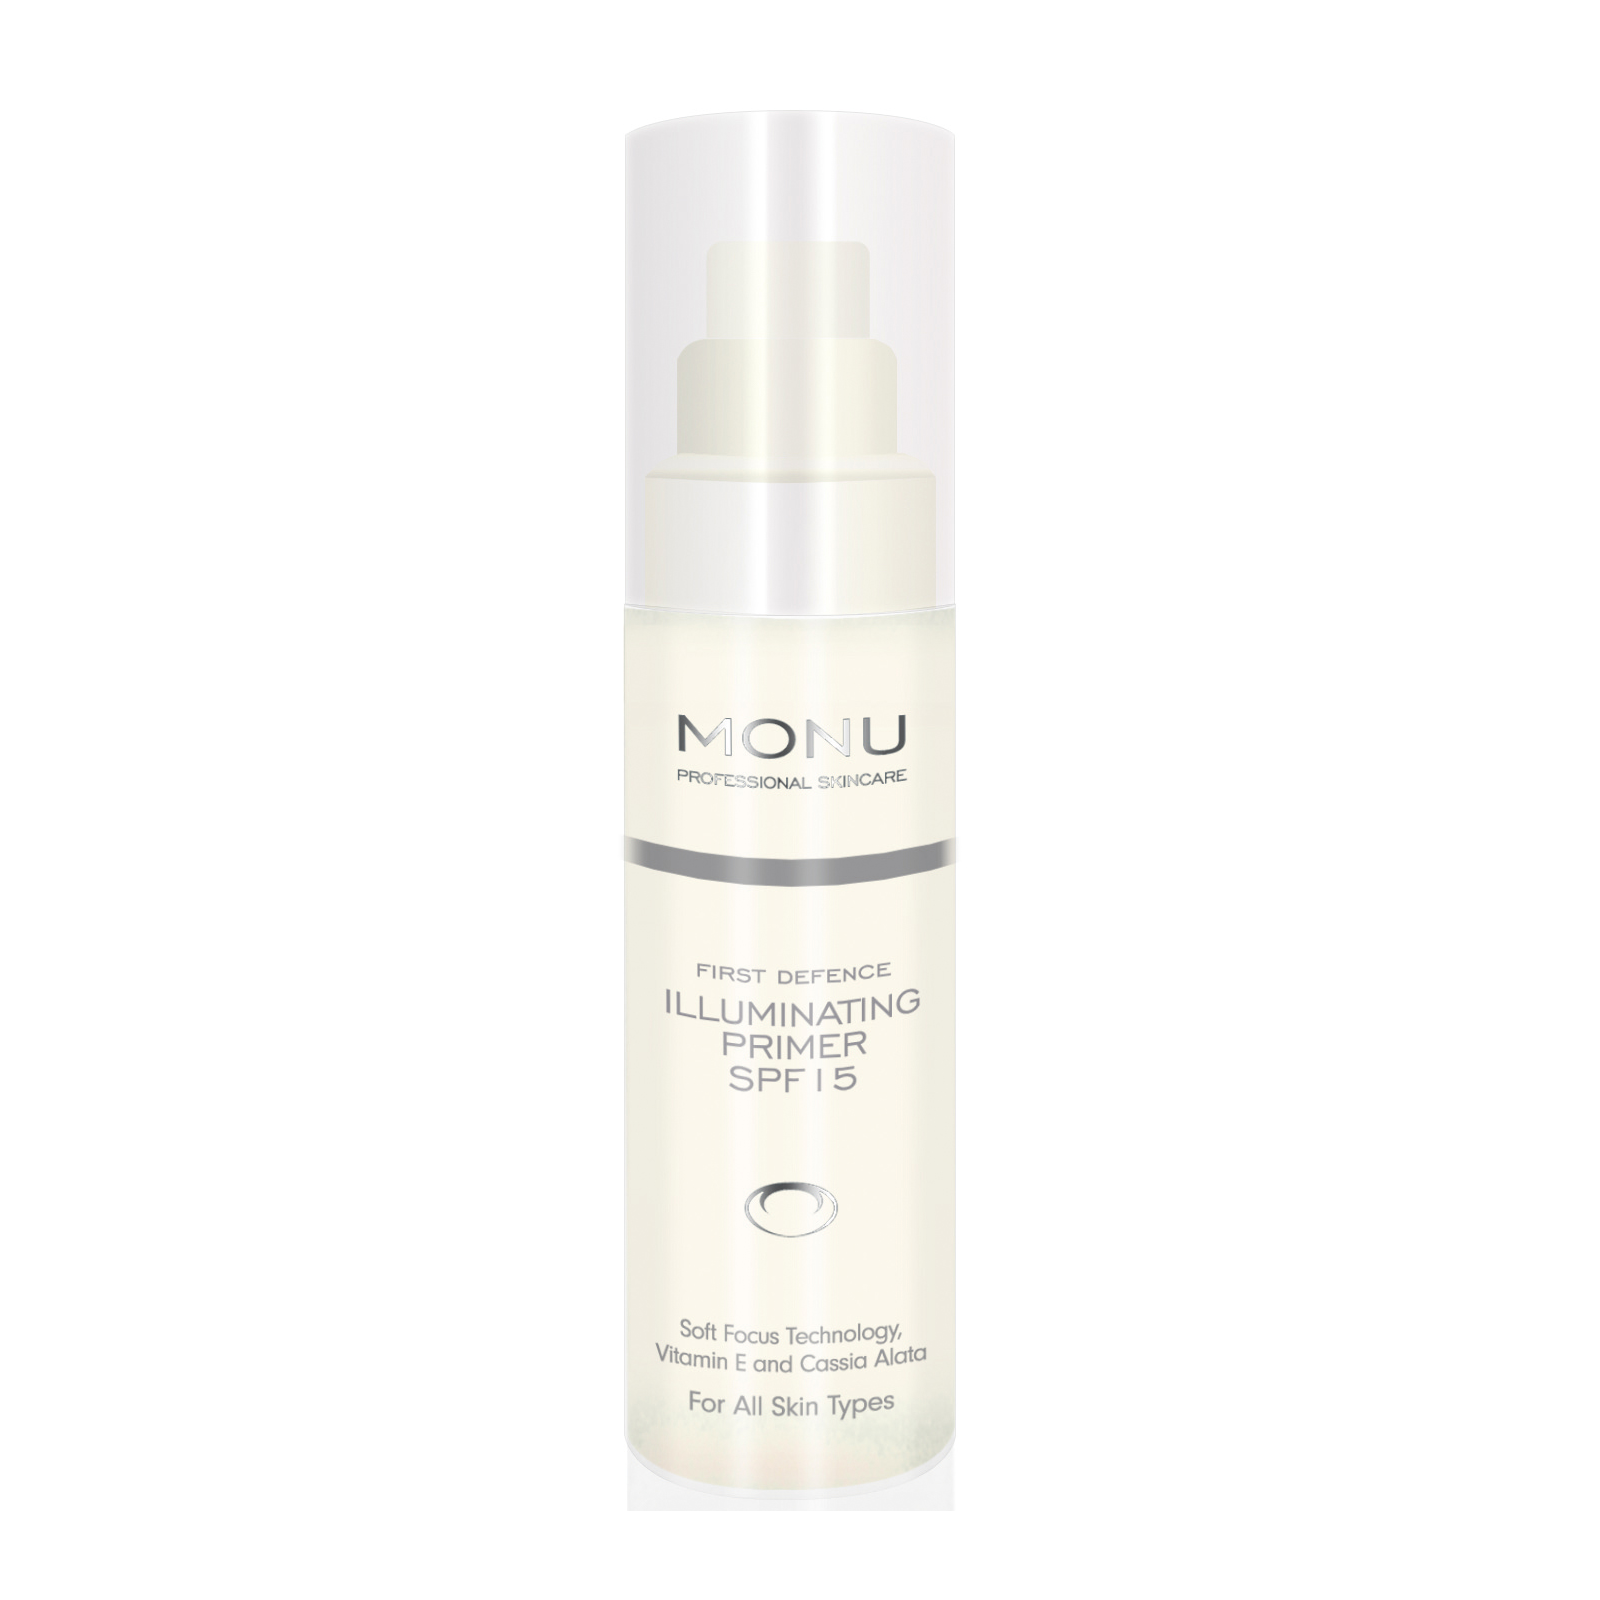 Refreshed Cleansed Rejuvenated Skin Can Be Yours